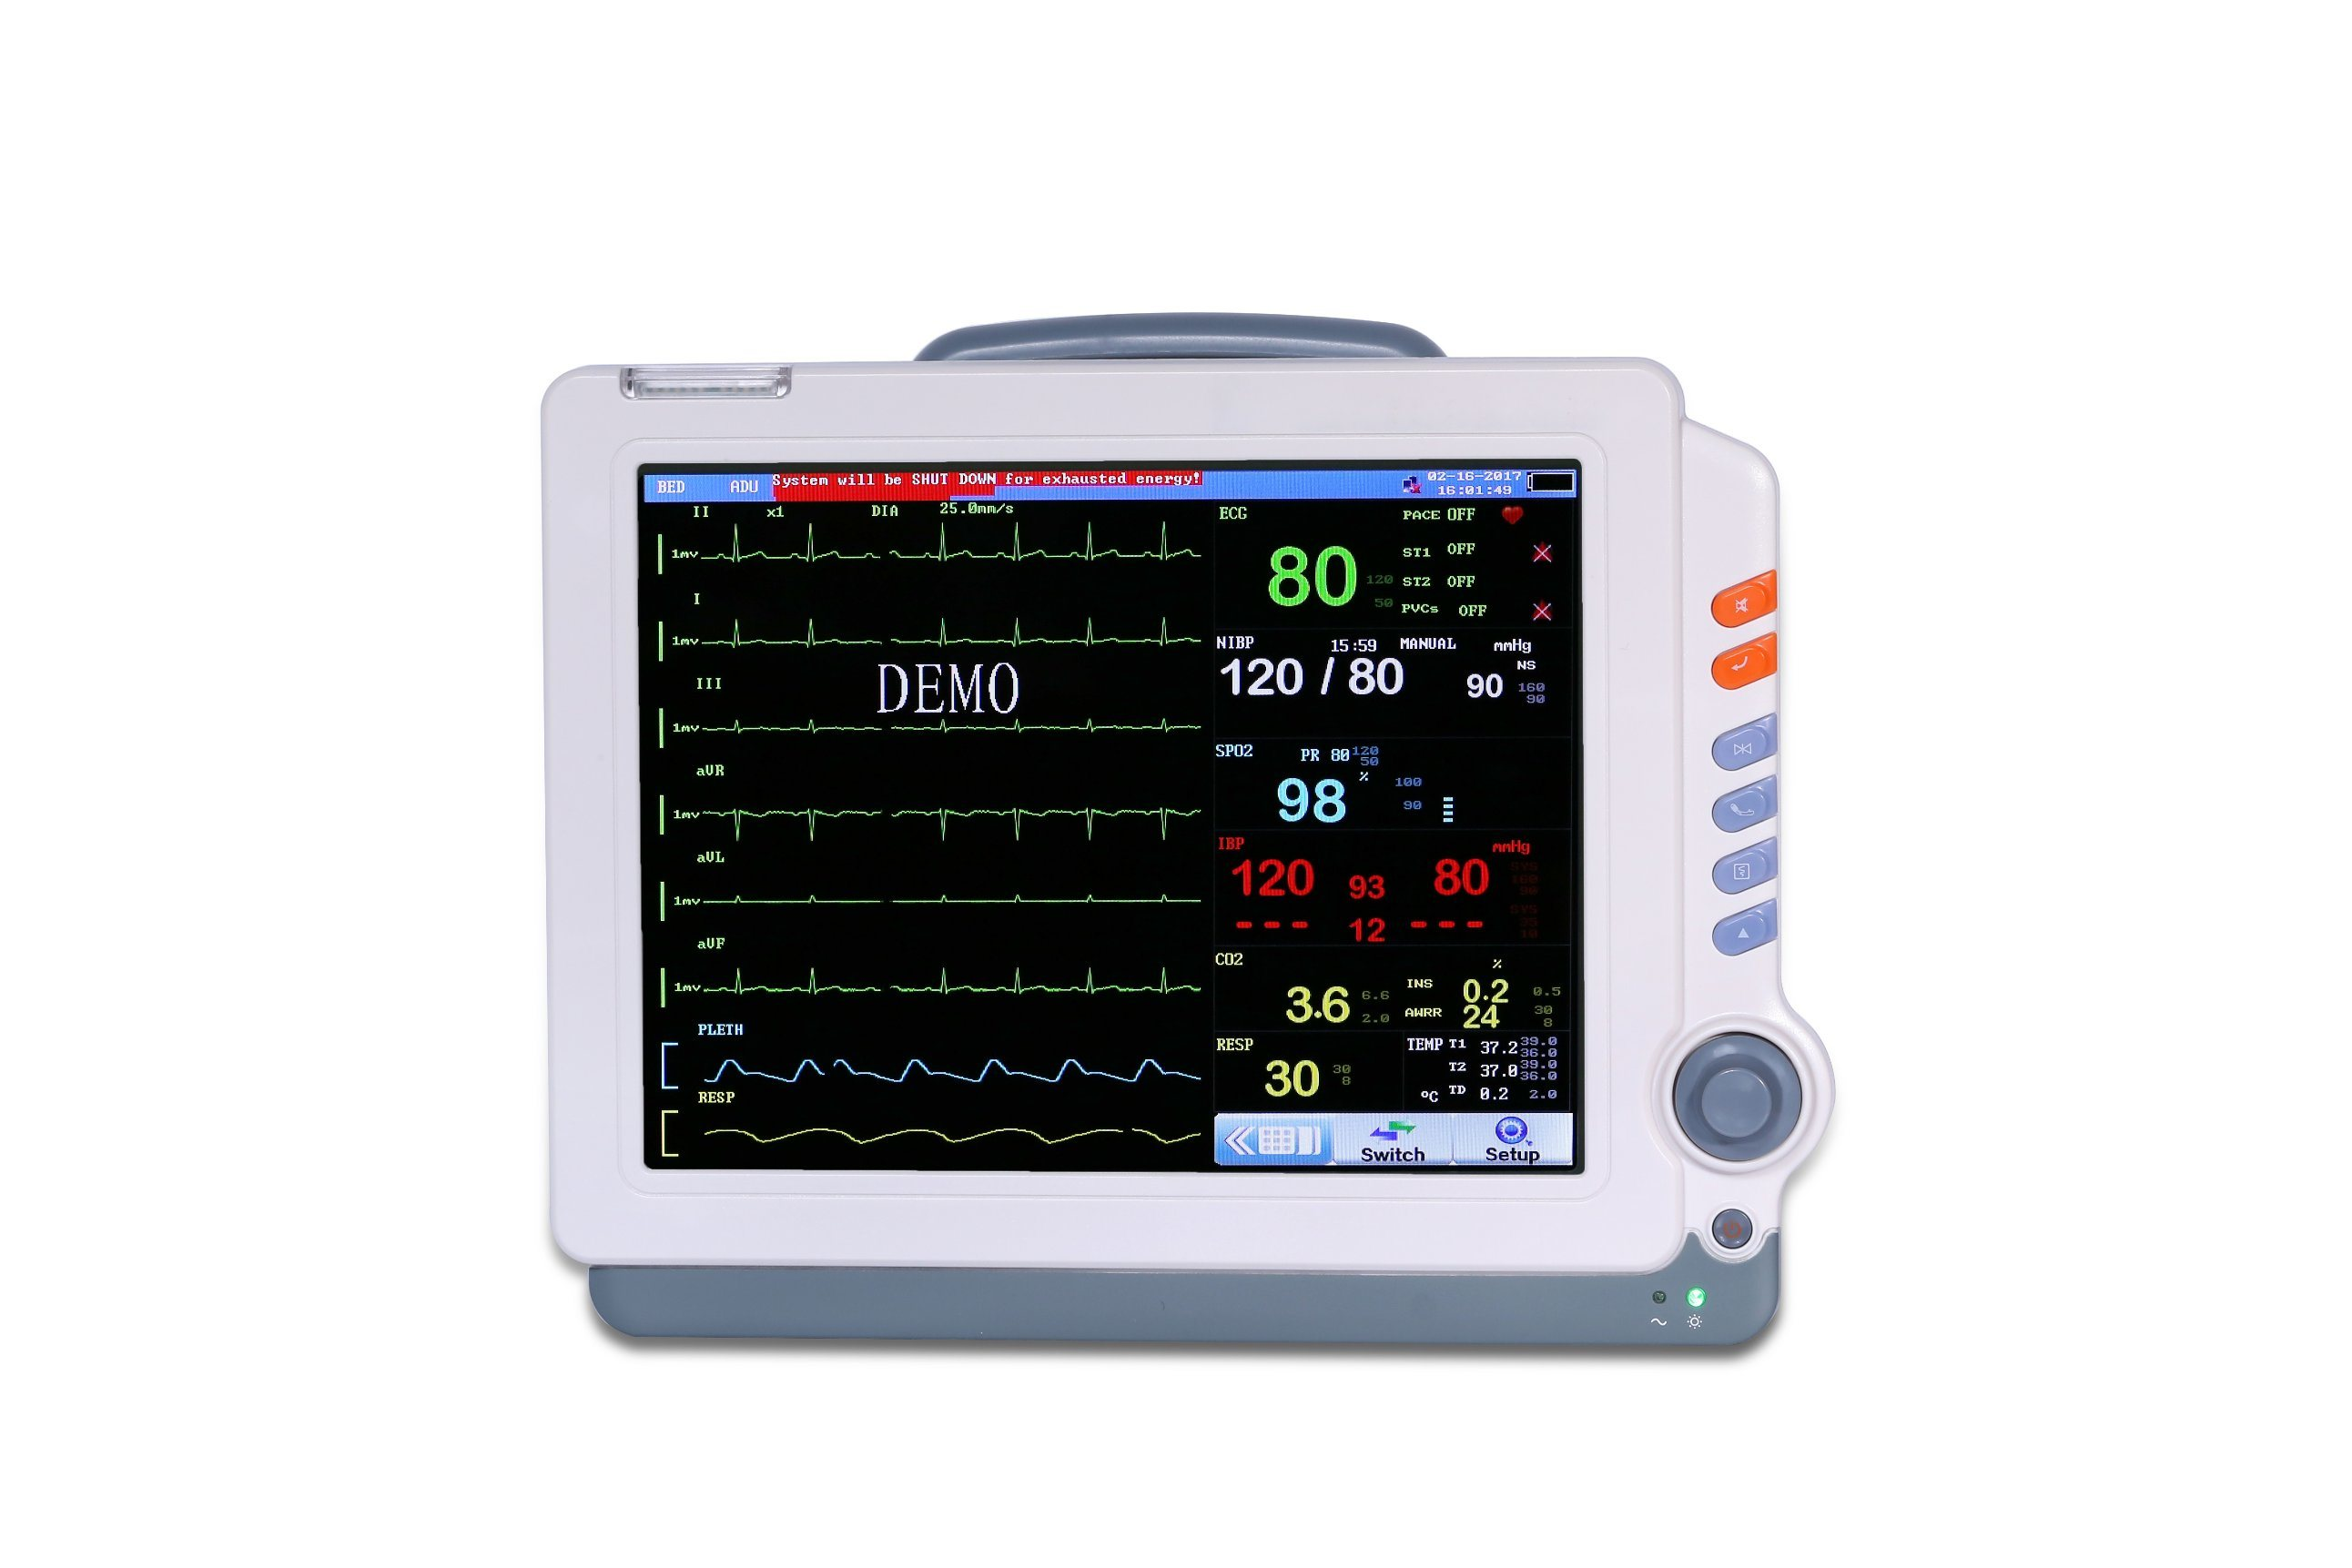 [Hot Item] Cheap Patient Medical Monitor/Physiological Monitor for Human or  Veterinary Clinic/ Hospital with Best Price - Mslmp06